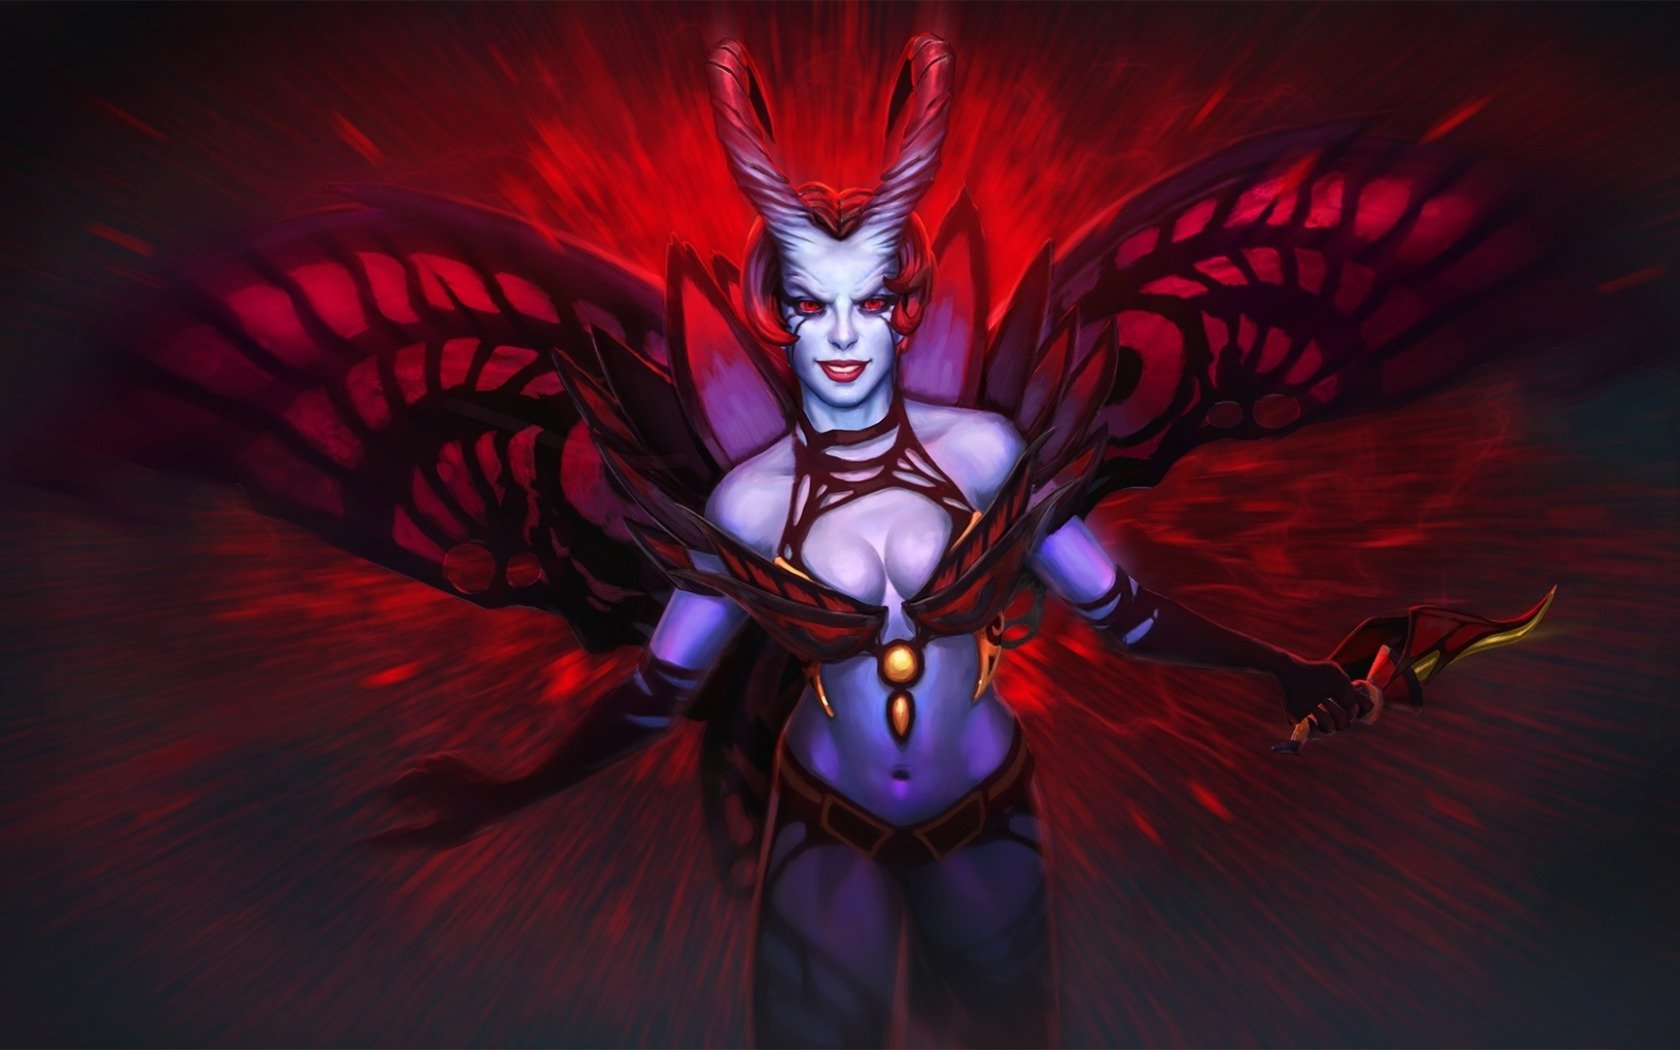 Queen of Pain computer wallpaper Wallpapers Dota 2 private 1680x1050